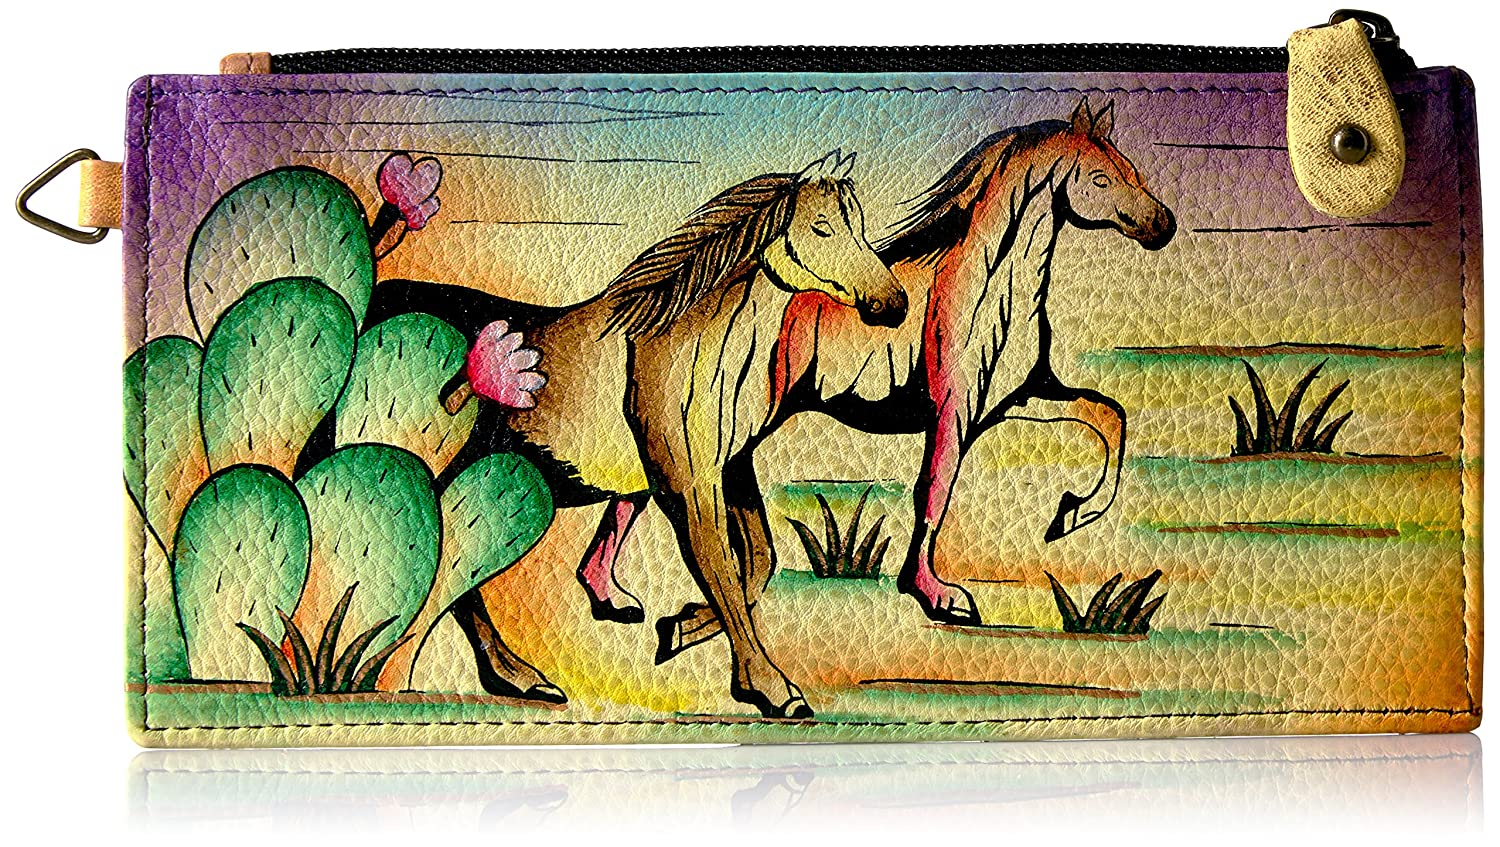 Anna By Anuschka, Handpainted Leather Organizer wallet (1713 AMT) 1713-AMT